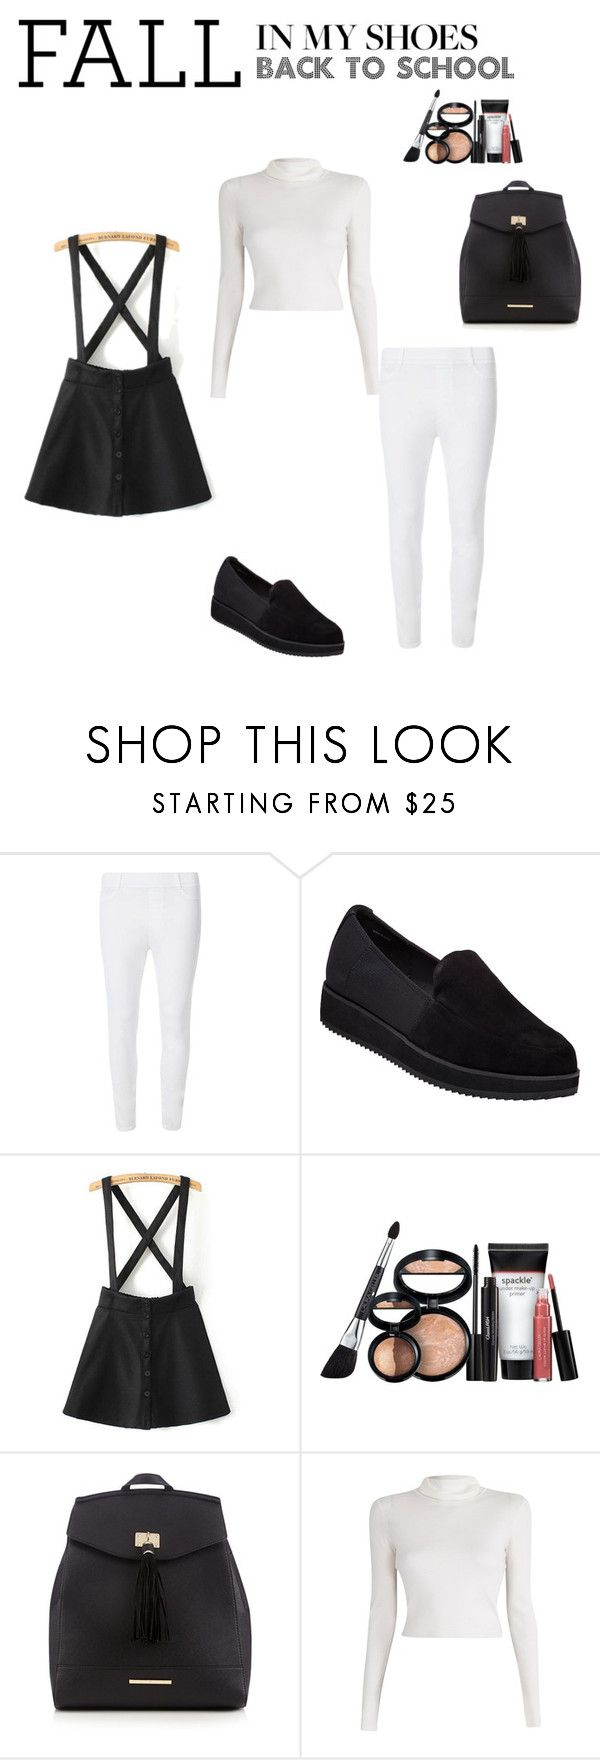 """""""Untitled #122"""" by molleighderp ❤ liked on Polyvore featuring Dorothy Perkins, Eileen Fisher, Laura Geller, Red Herring and A.L.C."""